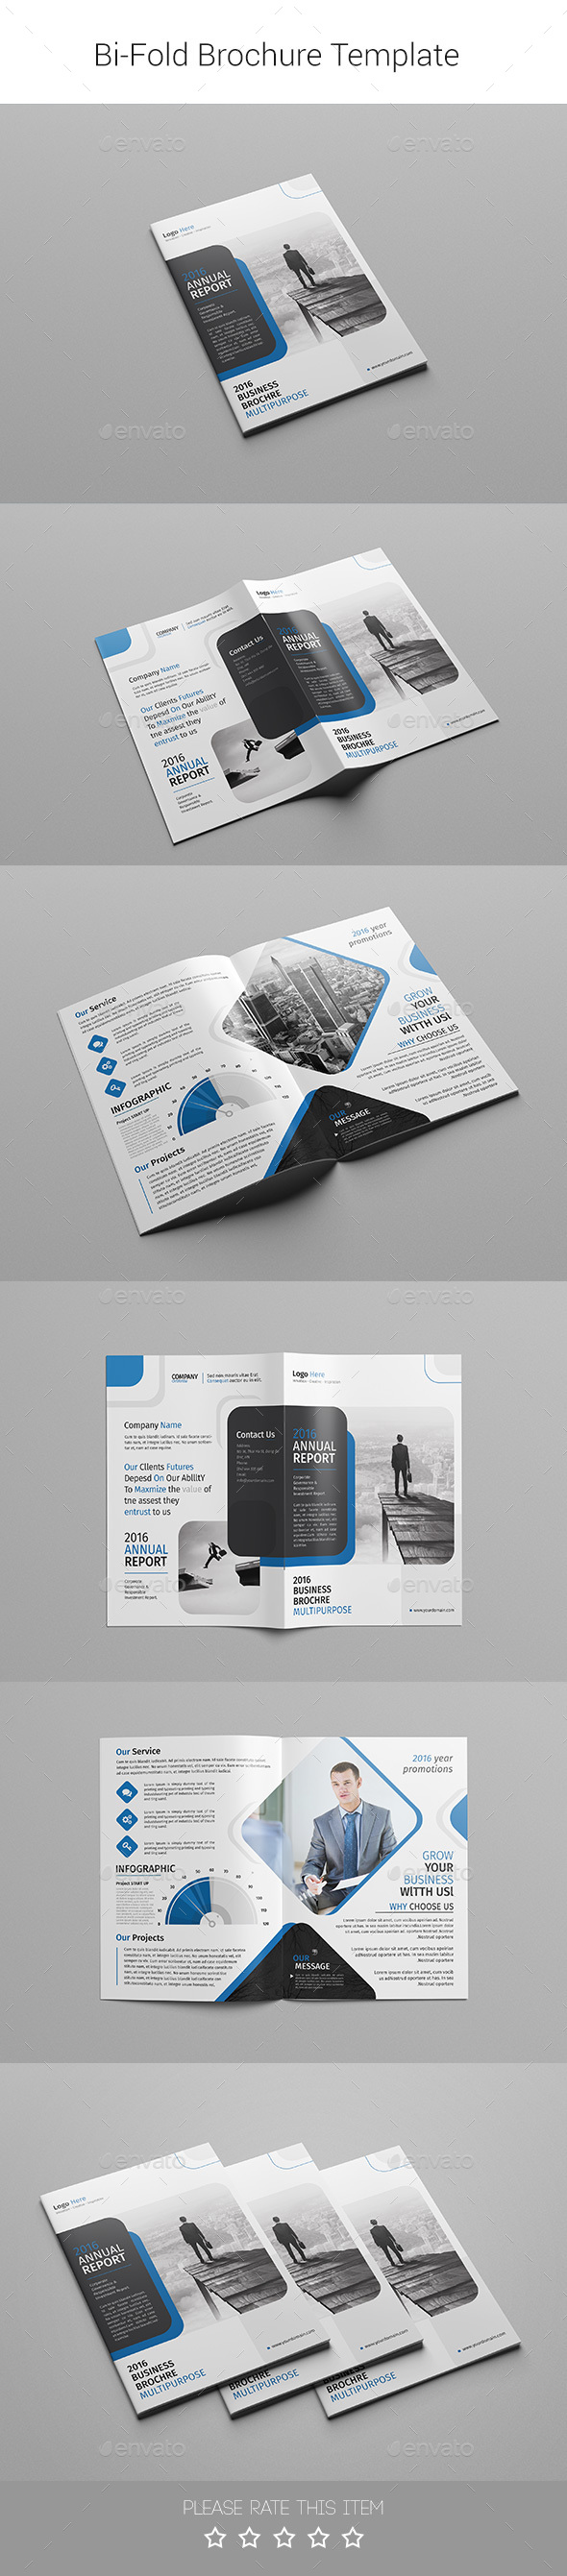 Corporate Bi-fold Brochure-Multipurpose 08 - Corporate Brochures